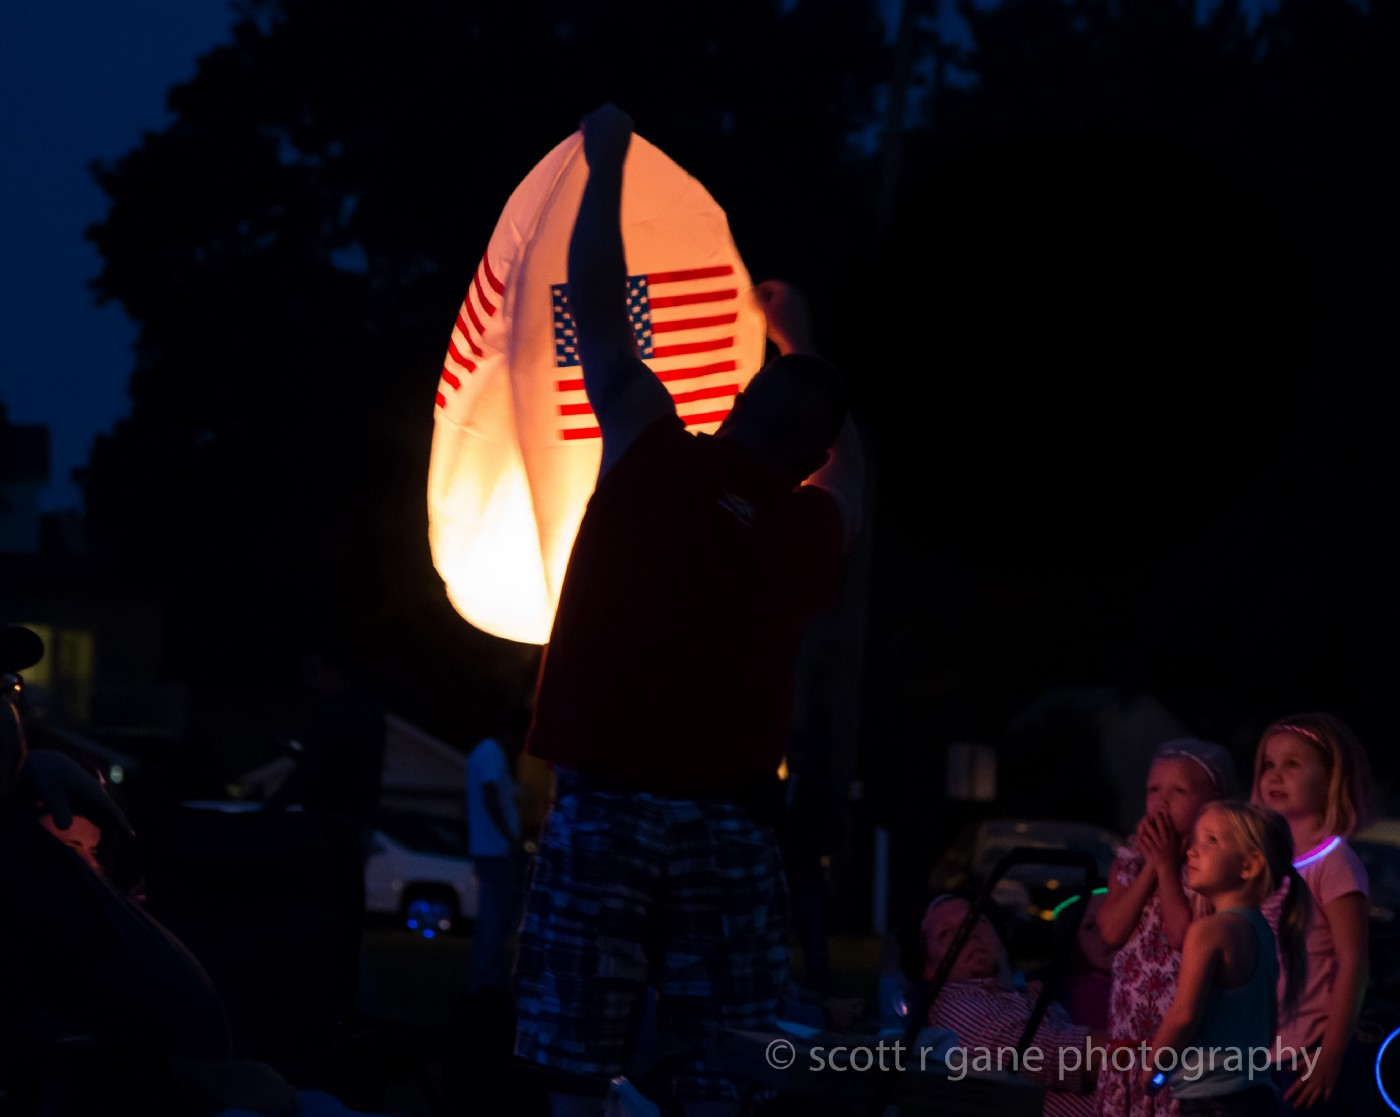 Independence: Dad lighting lantern for daughters looking on.